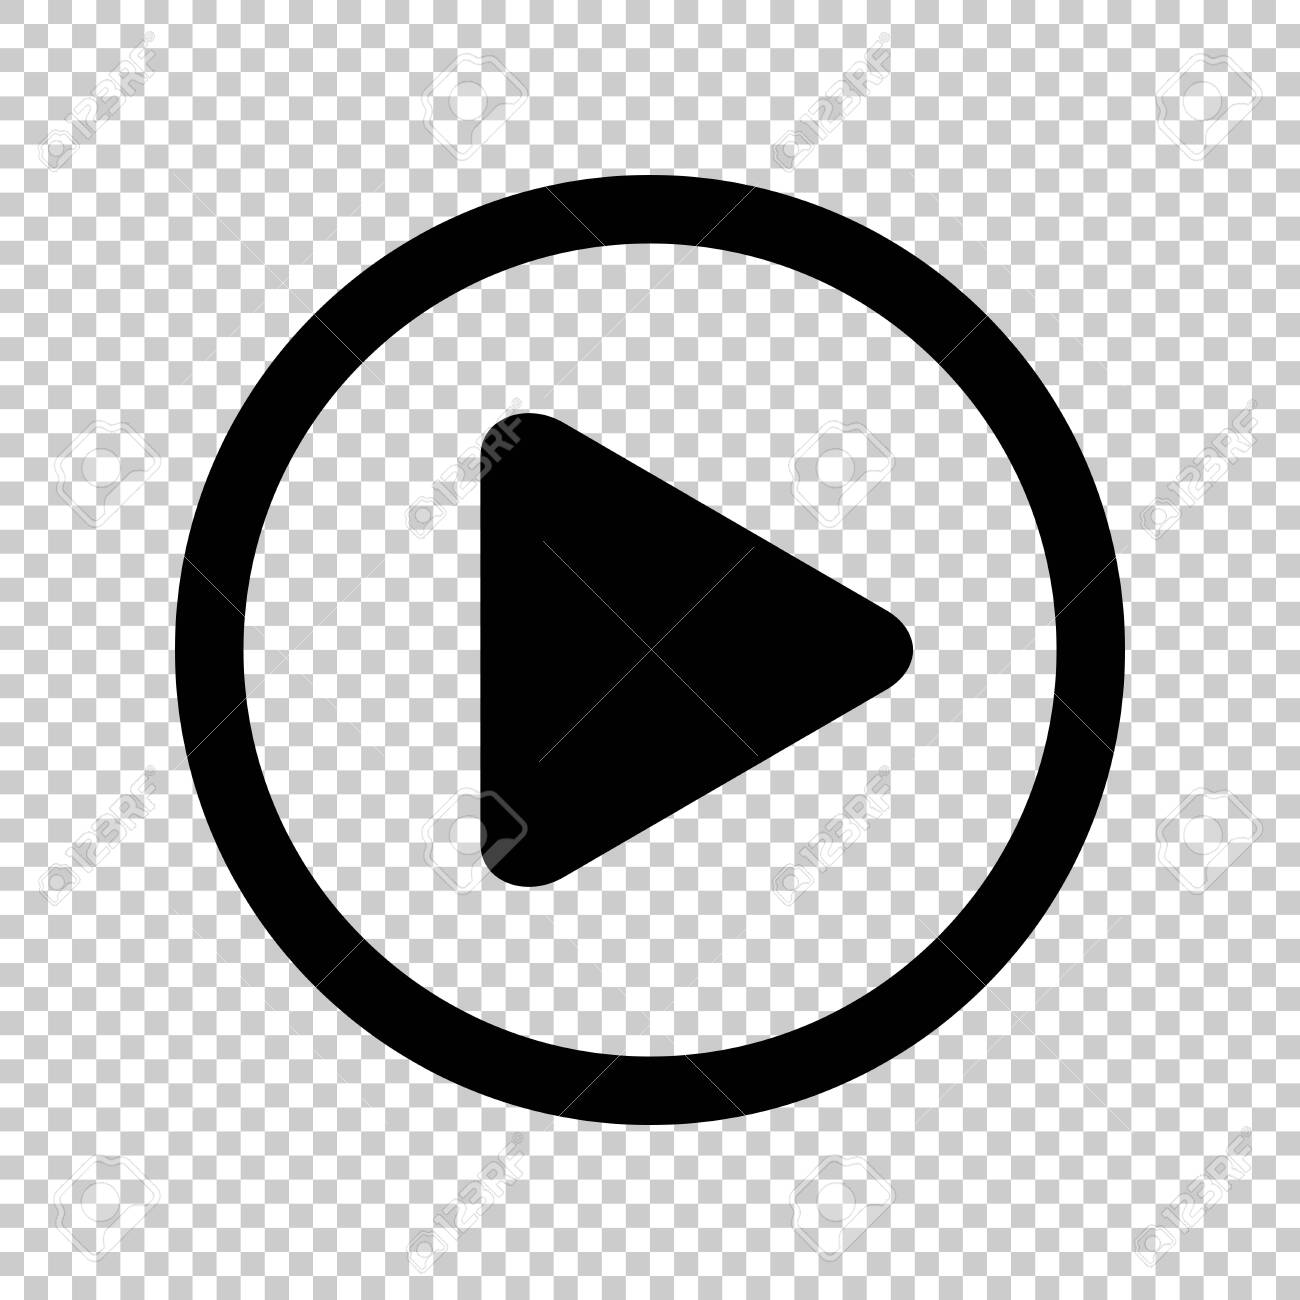 circle play icon for video isolated and transparent, flat button play media, icon play for music and video app, simple black play sign for ui application audio or movie, player button of interface - 144500363